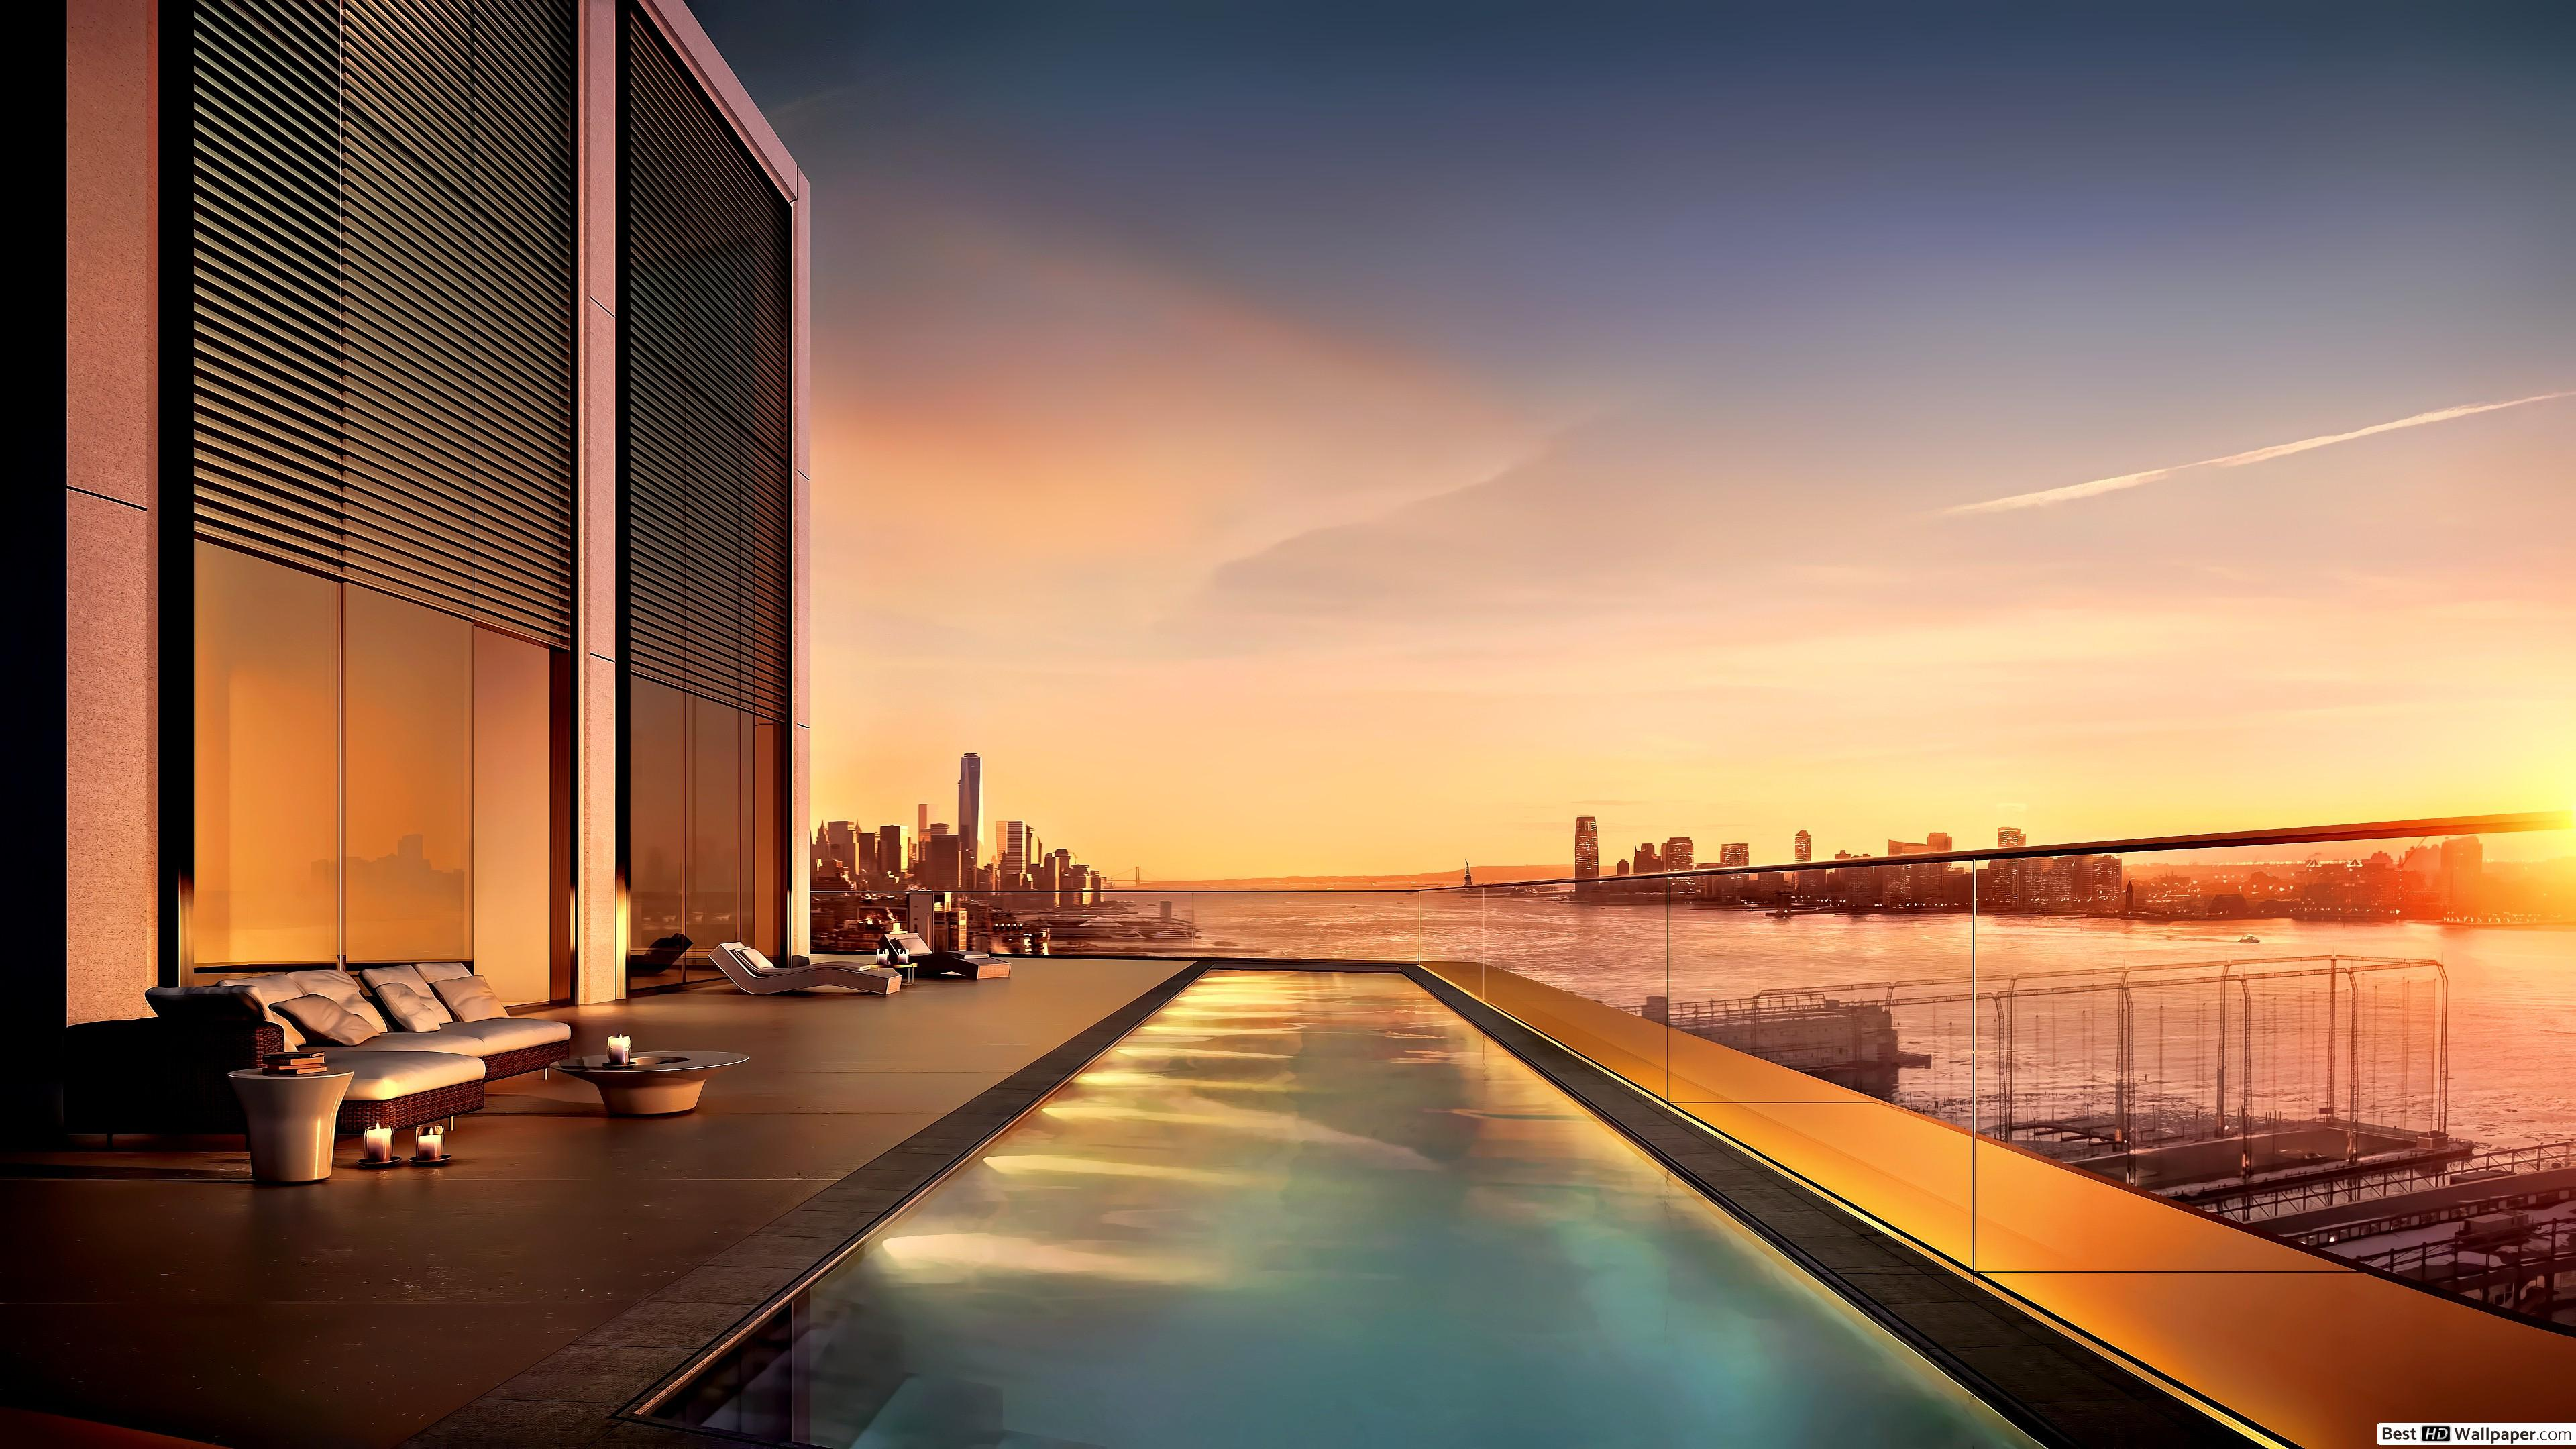 New York City Penthouse Pool , HD Wallpaper & Backgrounds